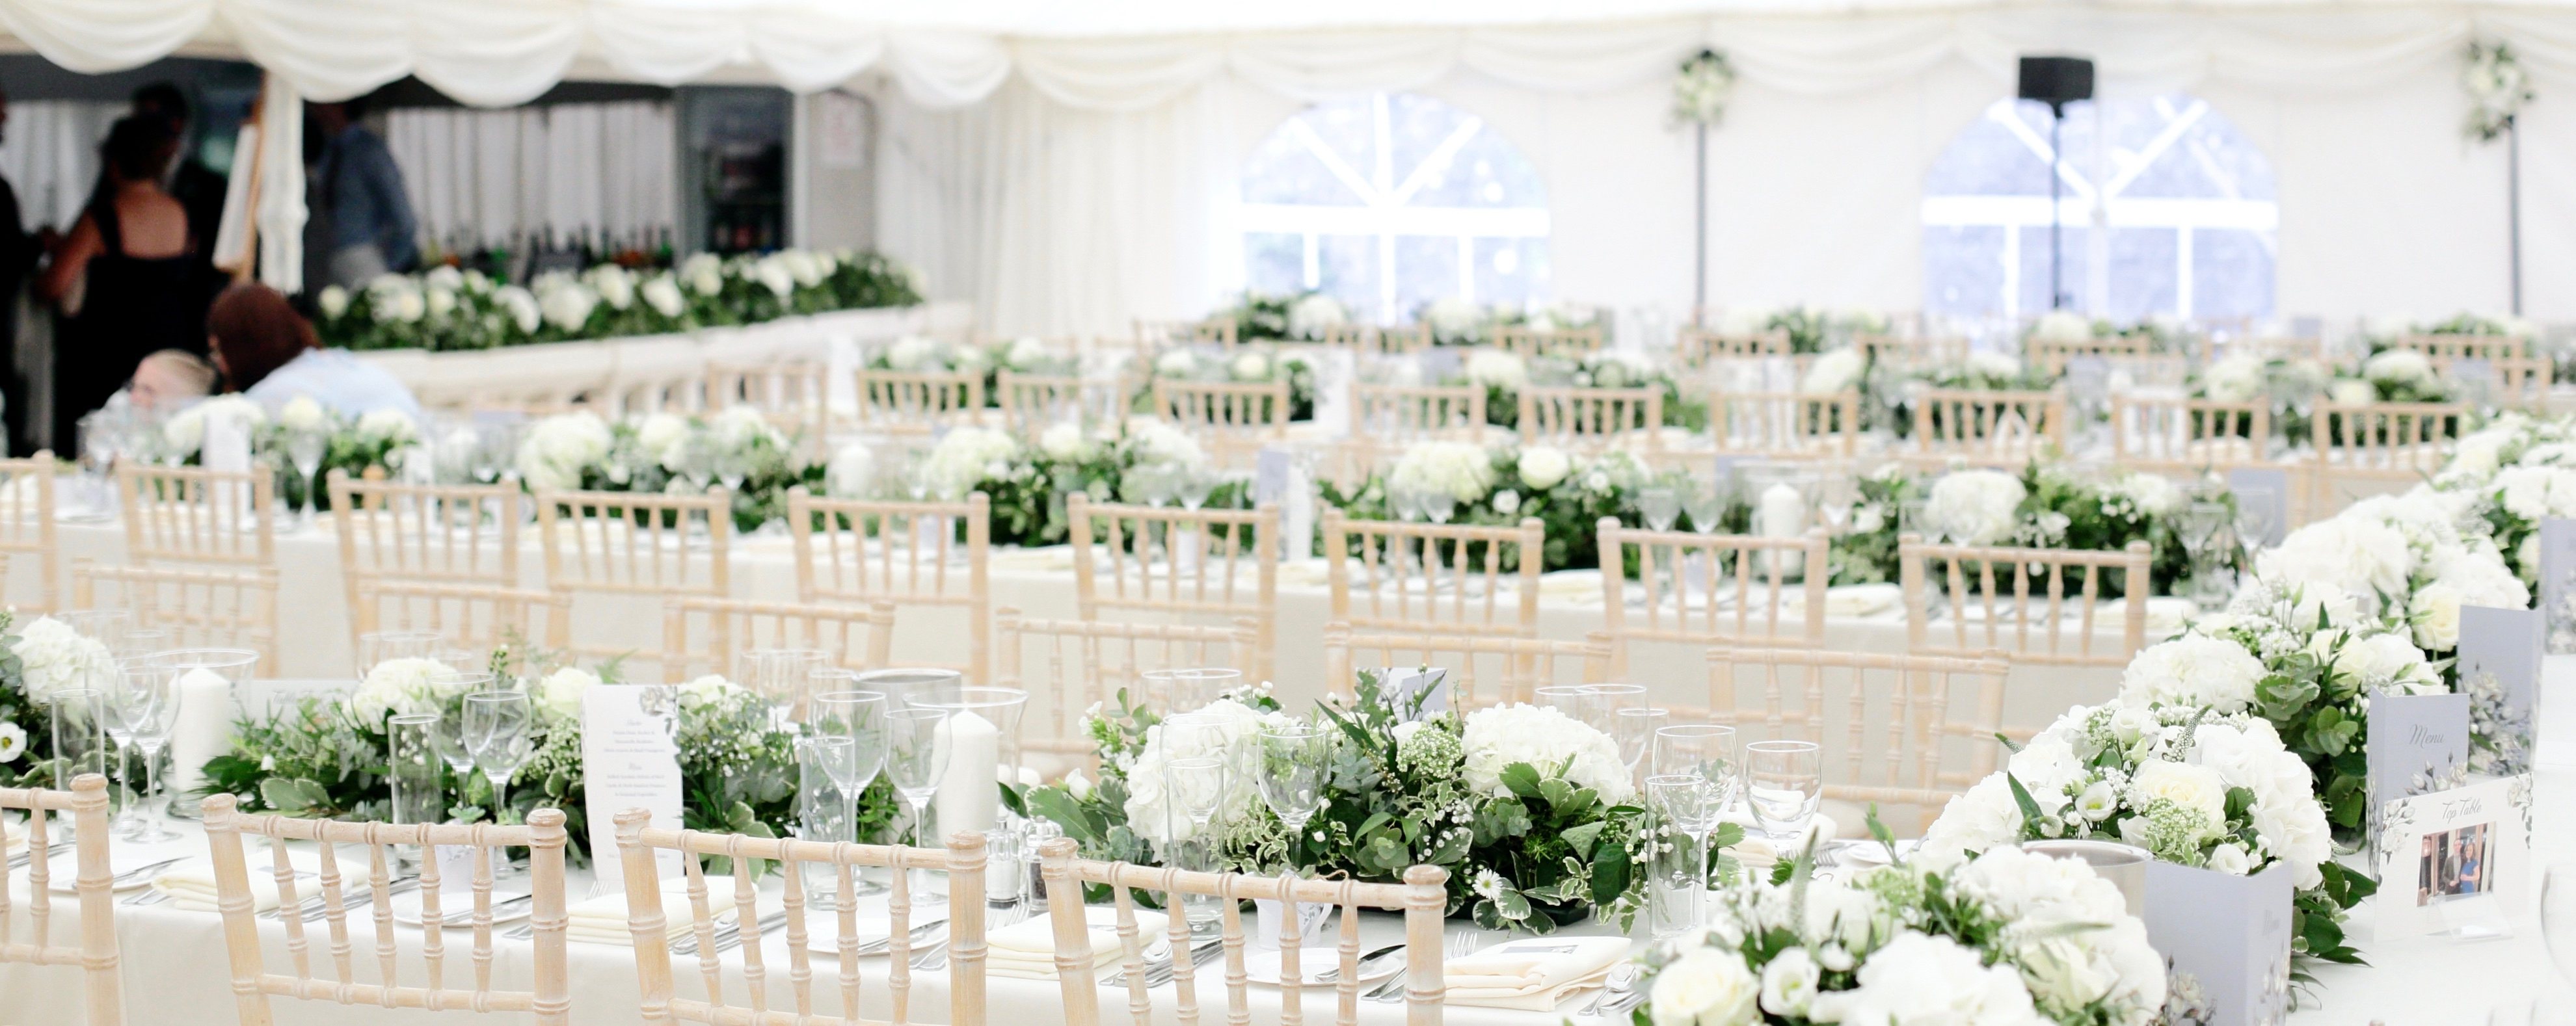 Marquee Tables And Flowers